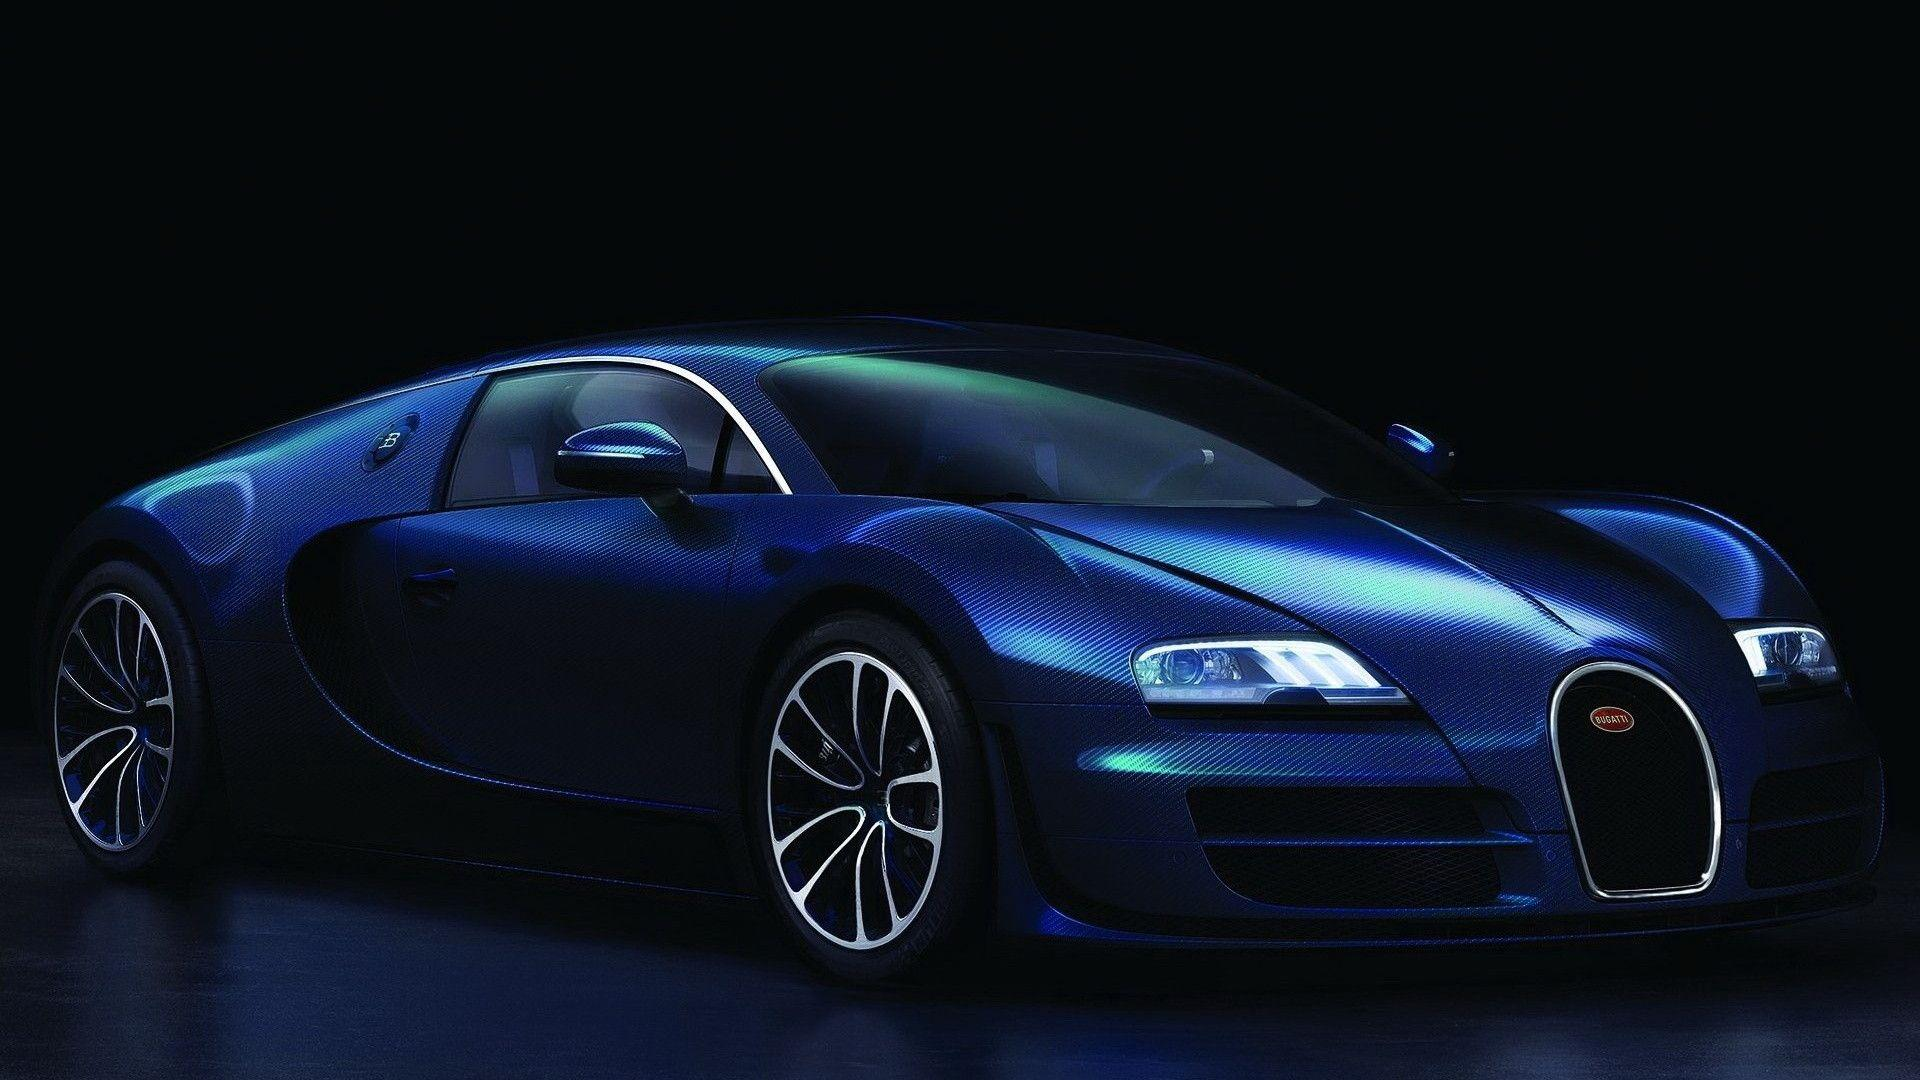 Bugatti Backgrounds Photo Wallpaper For Deskto #5667 Wallpaper ...